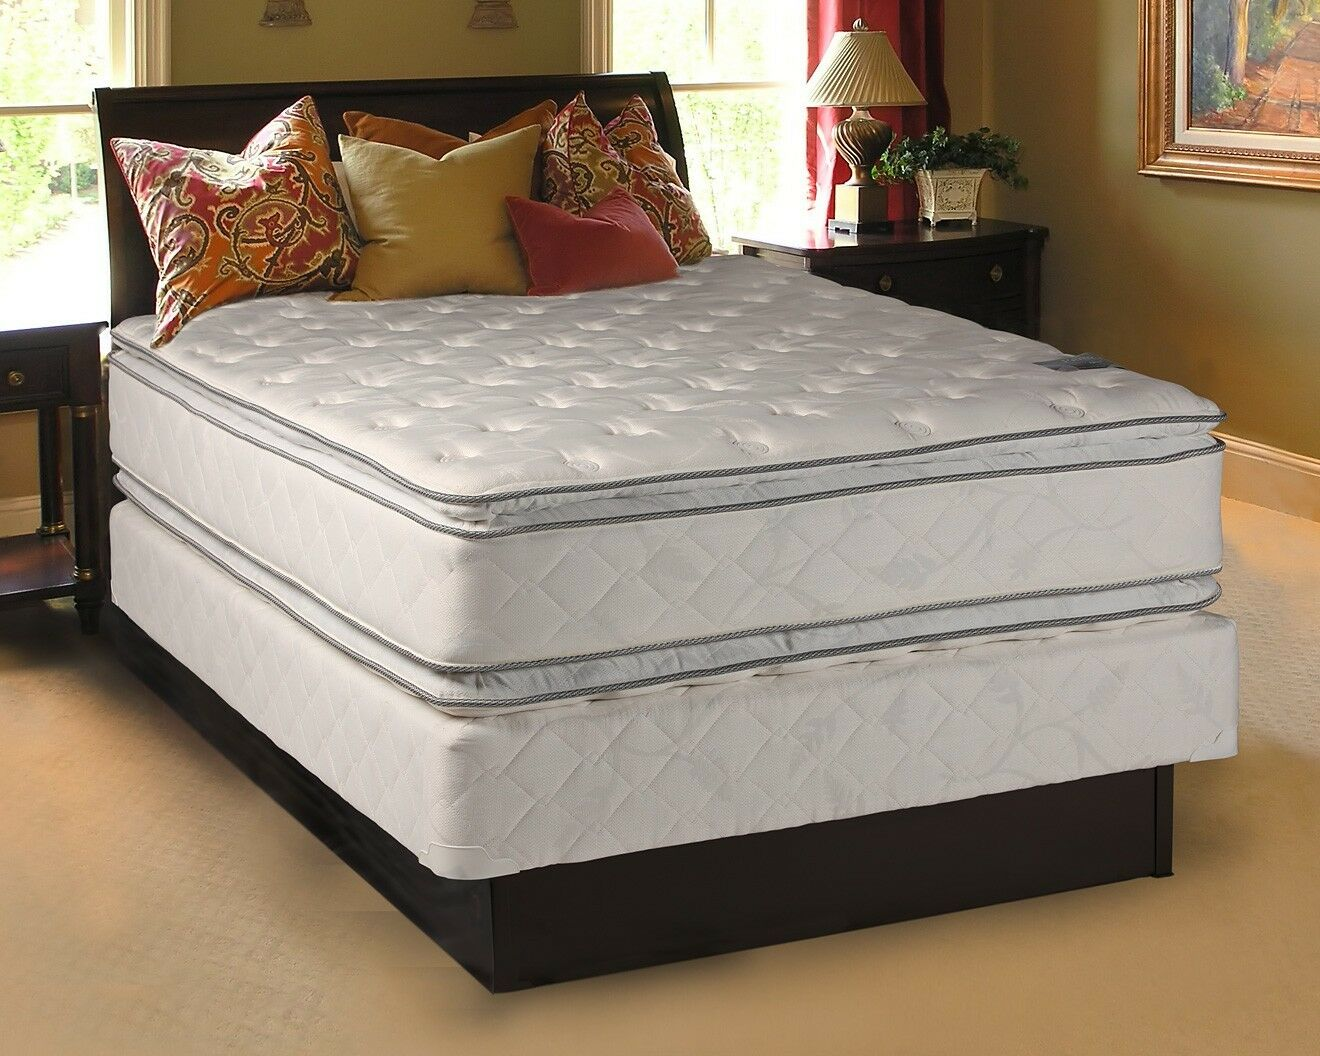 Queen Mattress And Boxspring Set